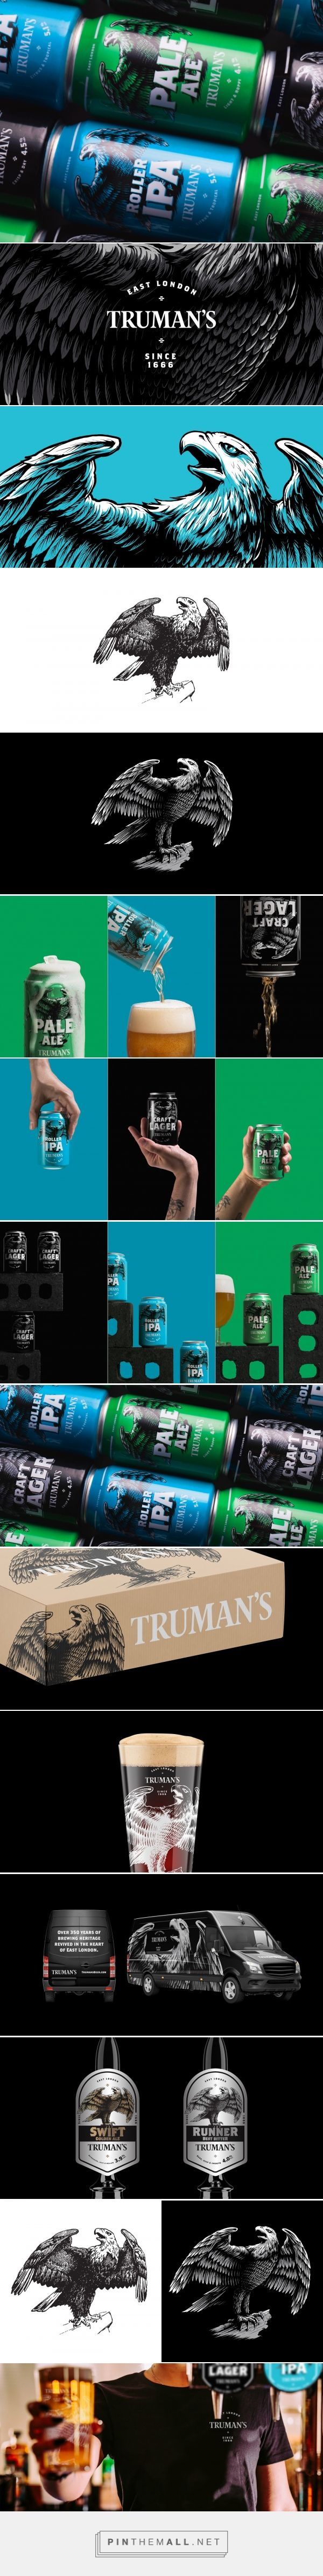 Truman's Brewery - Packaging of the World - Creative Package Design Gallery - http://www.packagingoftheworld.com/2017/11/trumans-brewery.html